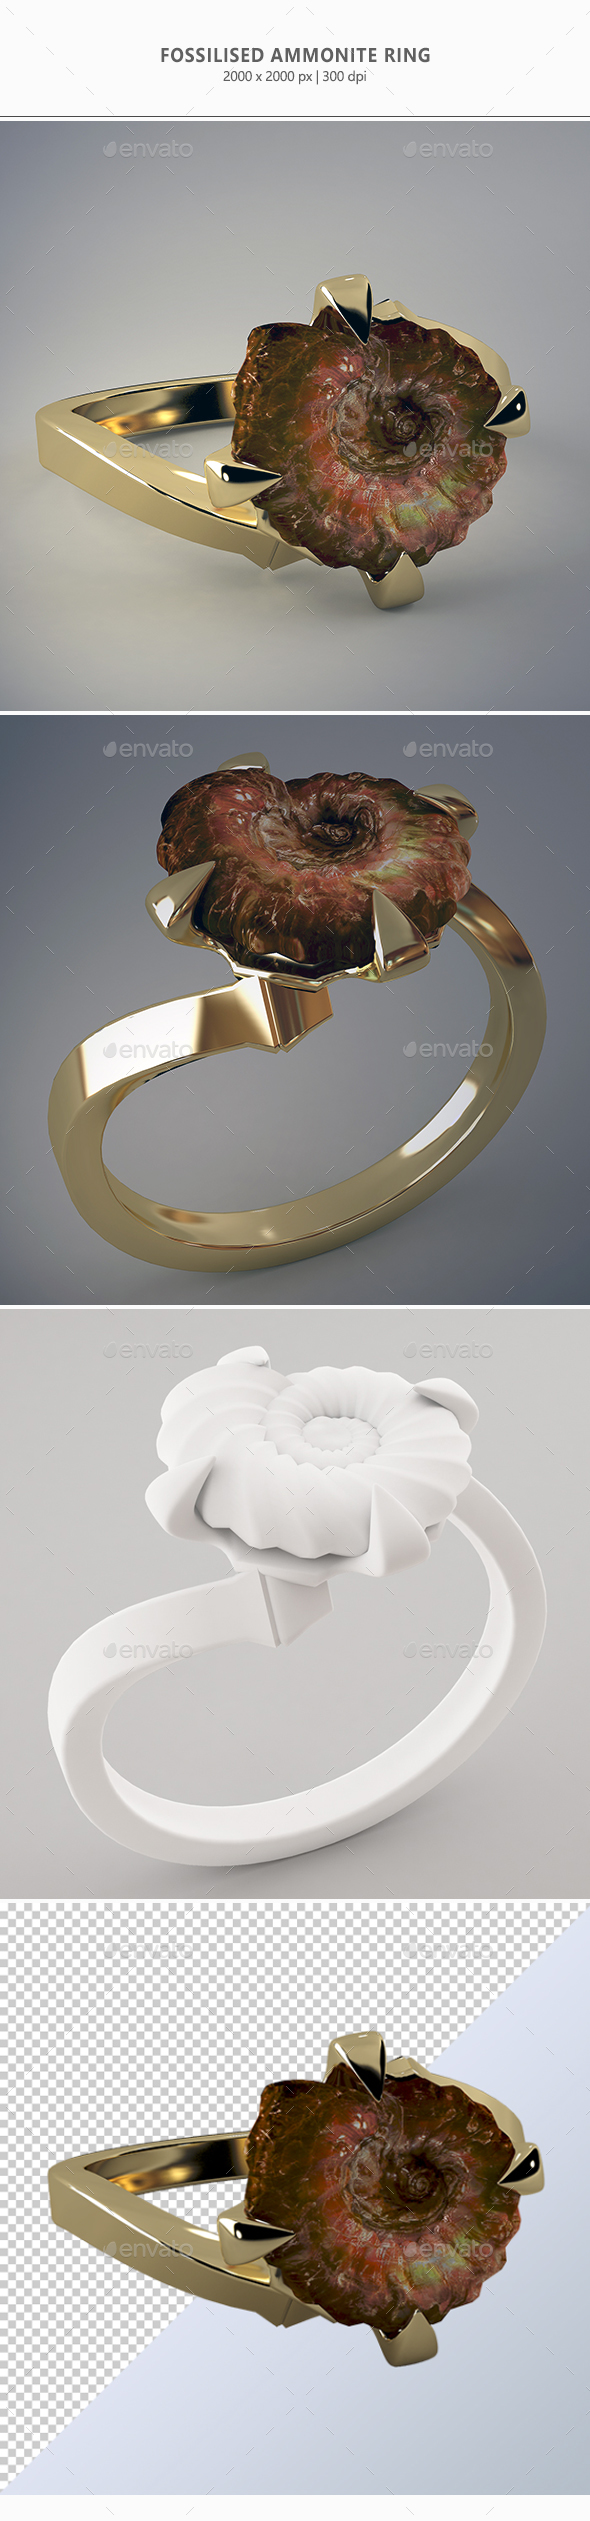 Fossilised Ammonite Ring - Objects 3D Renders